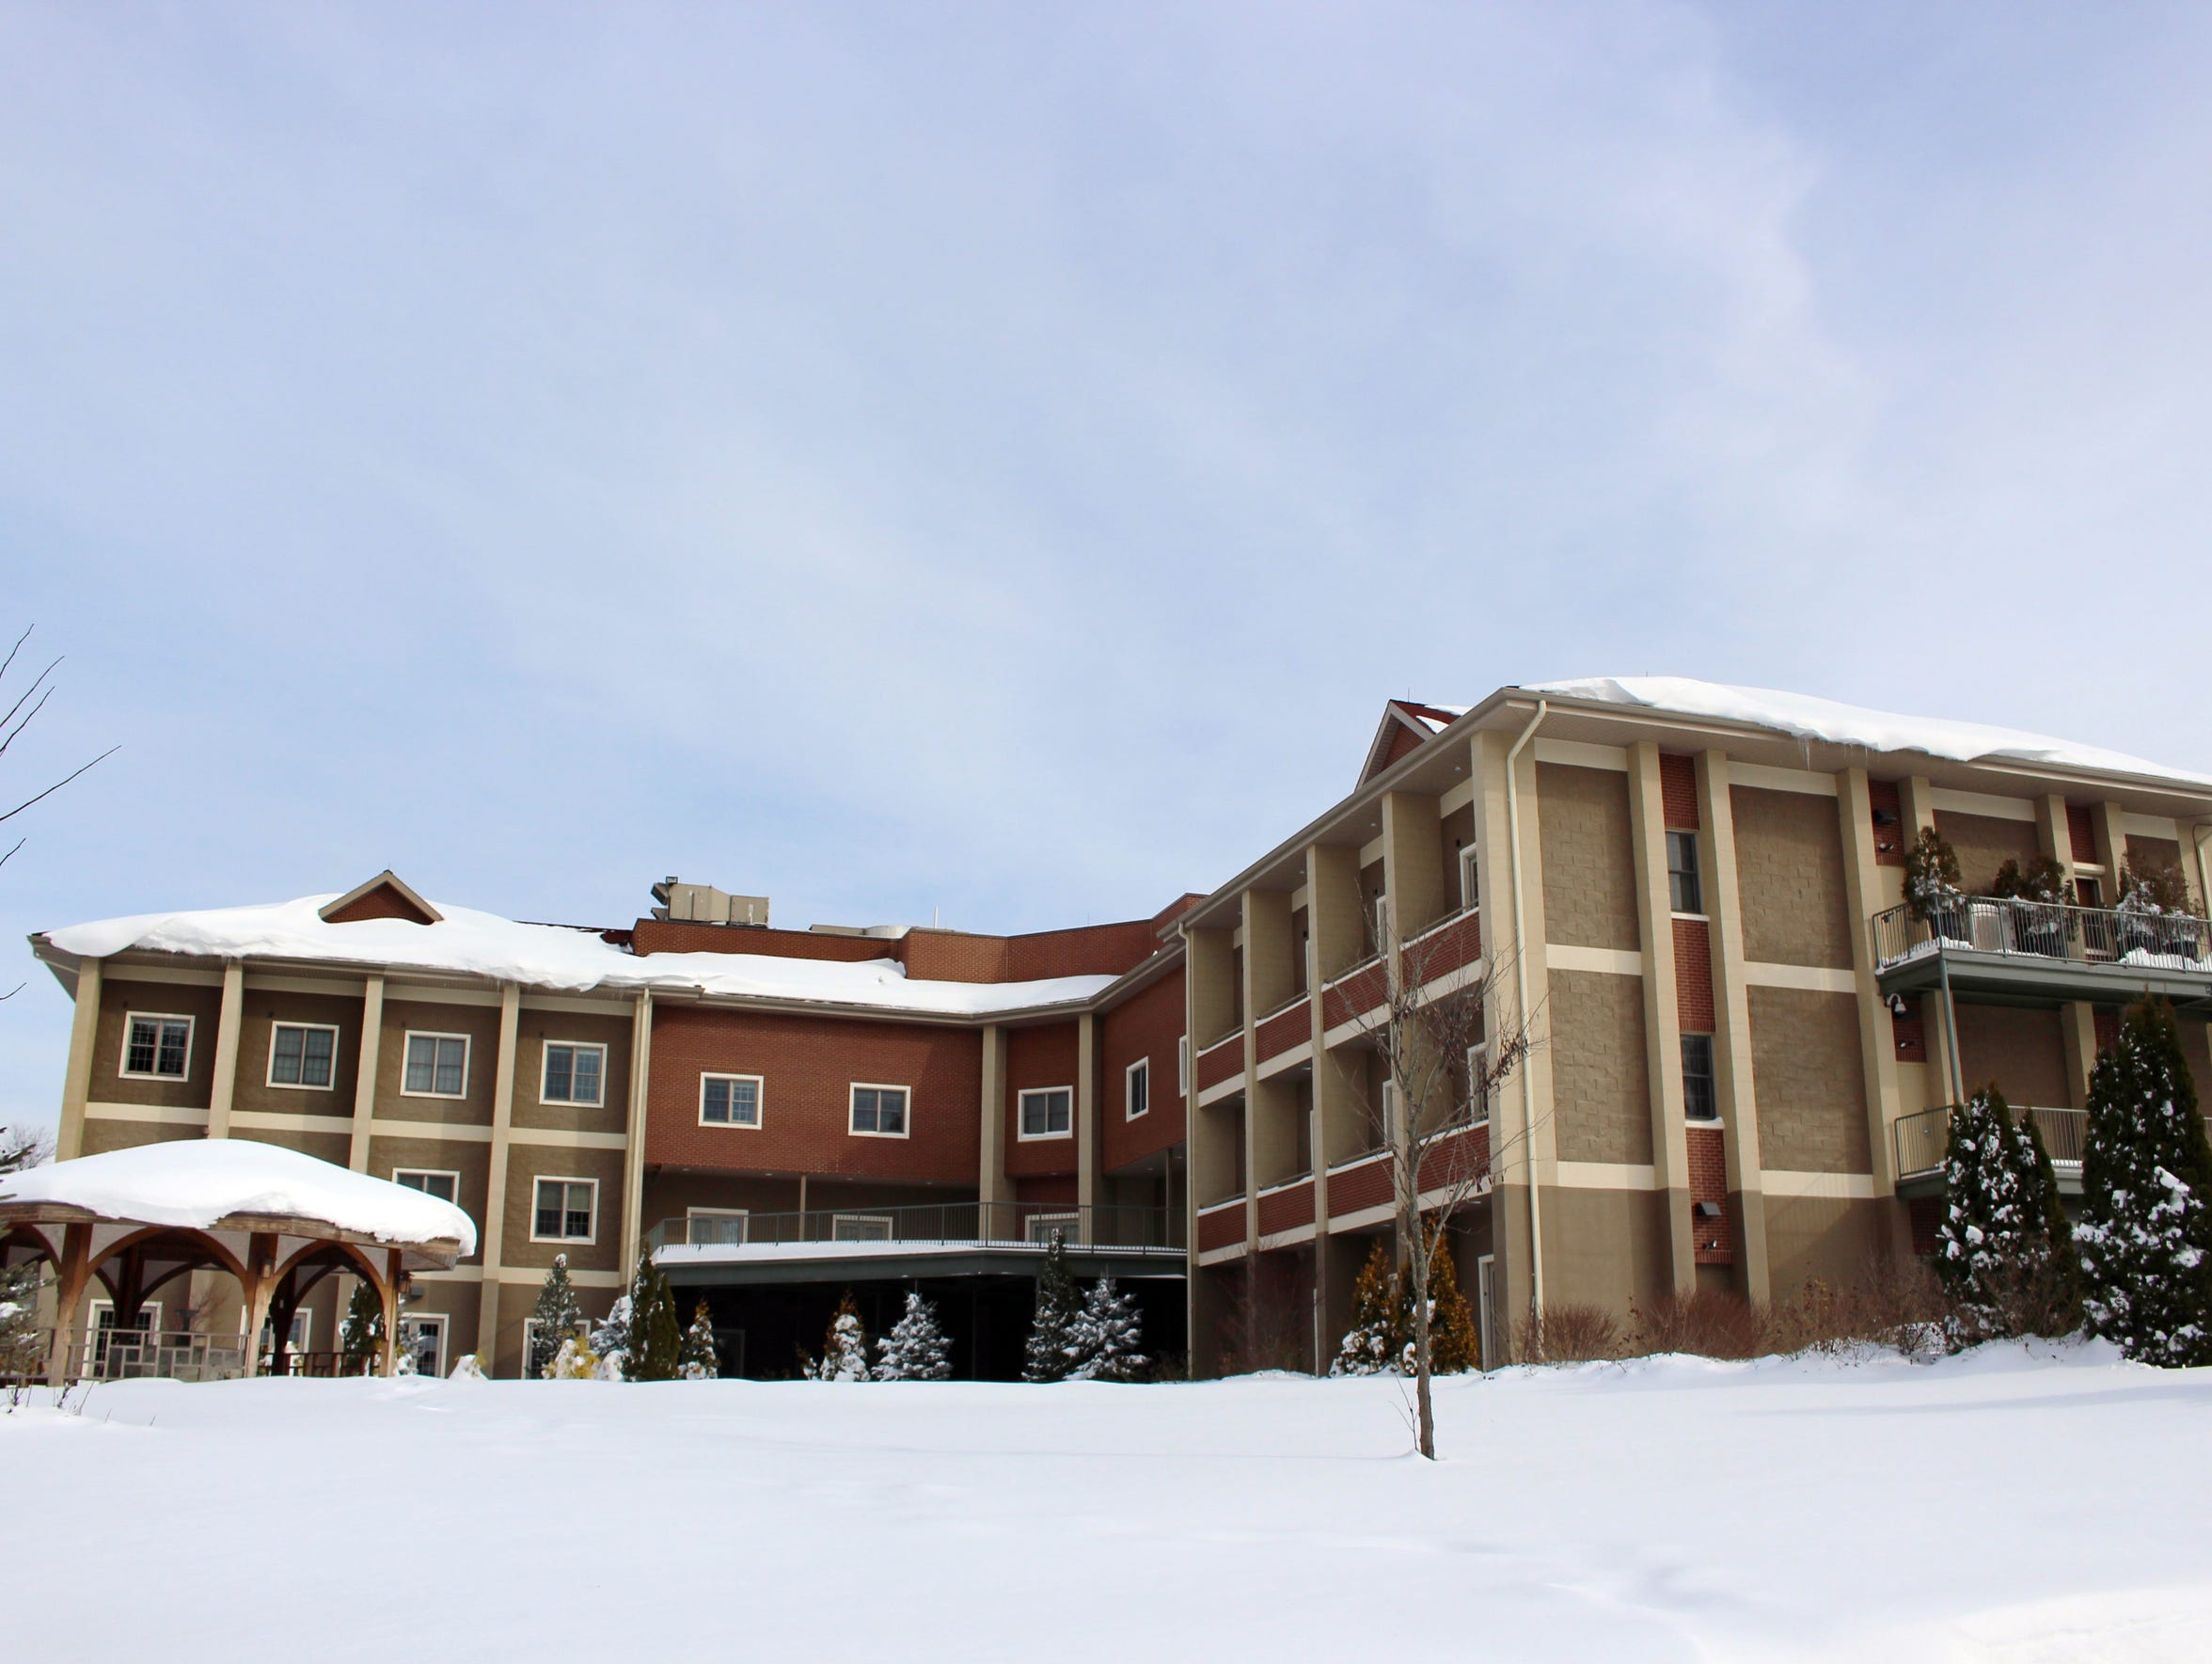 This Jan. 25 photo shows the multipurpose building